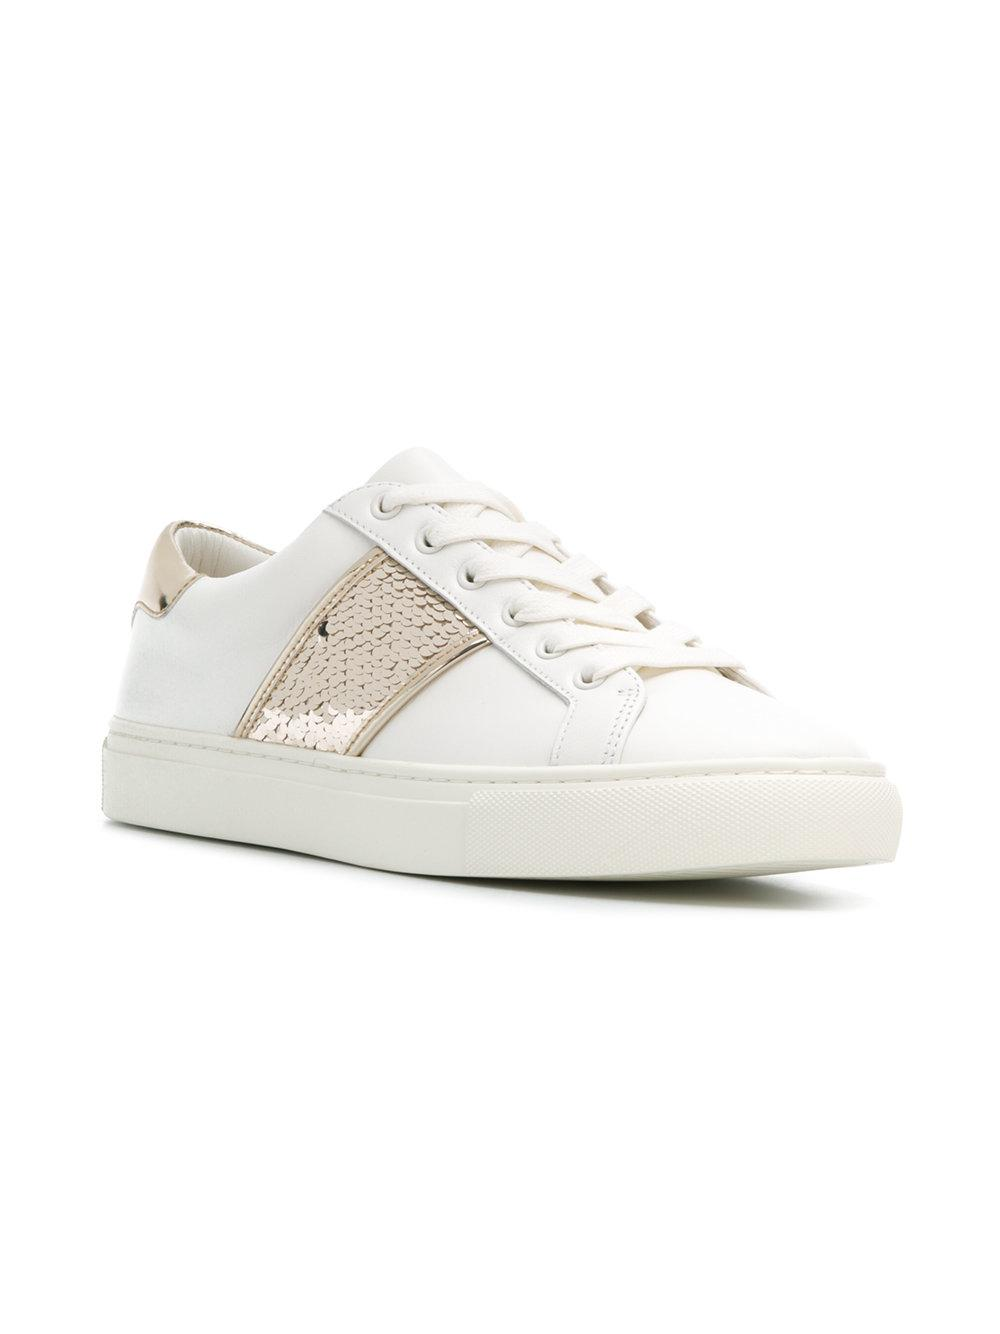 6477c4e909fa Lyst - Tory Burch Carter Sequin Sneakers in White